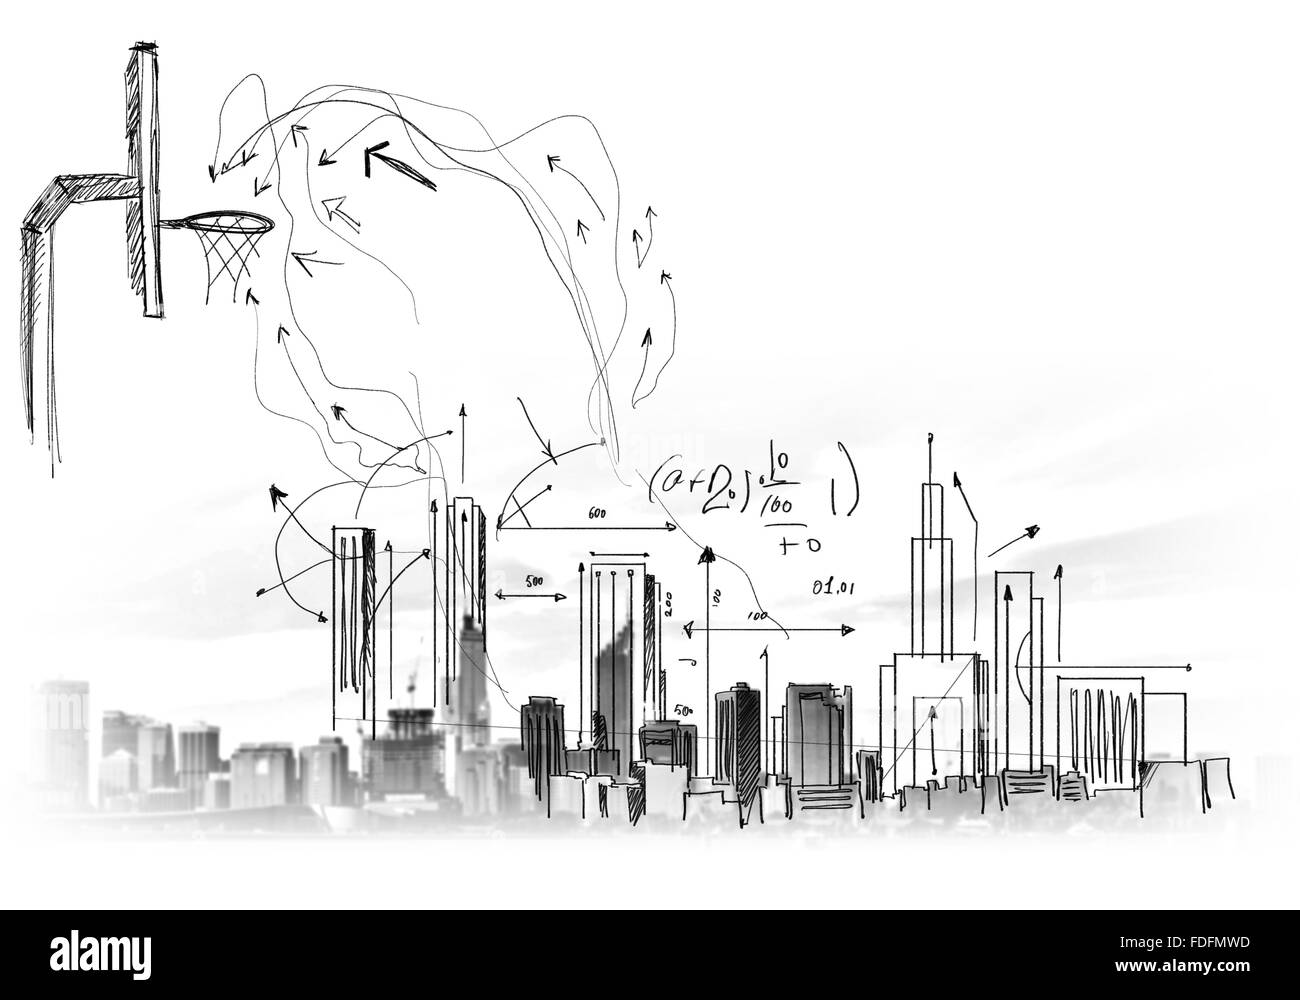 Background image with sketches and drawings on grey wall - Stock Image